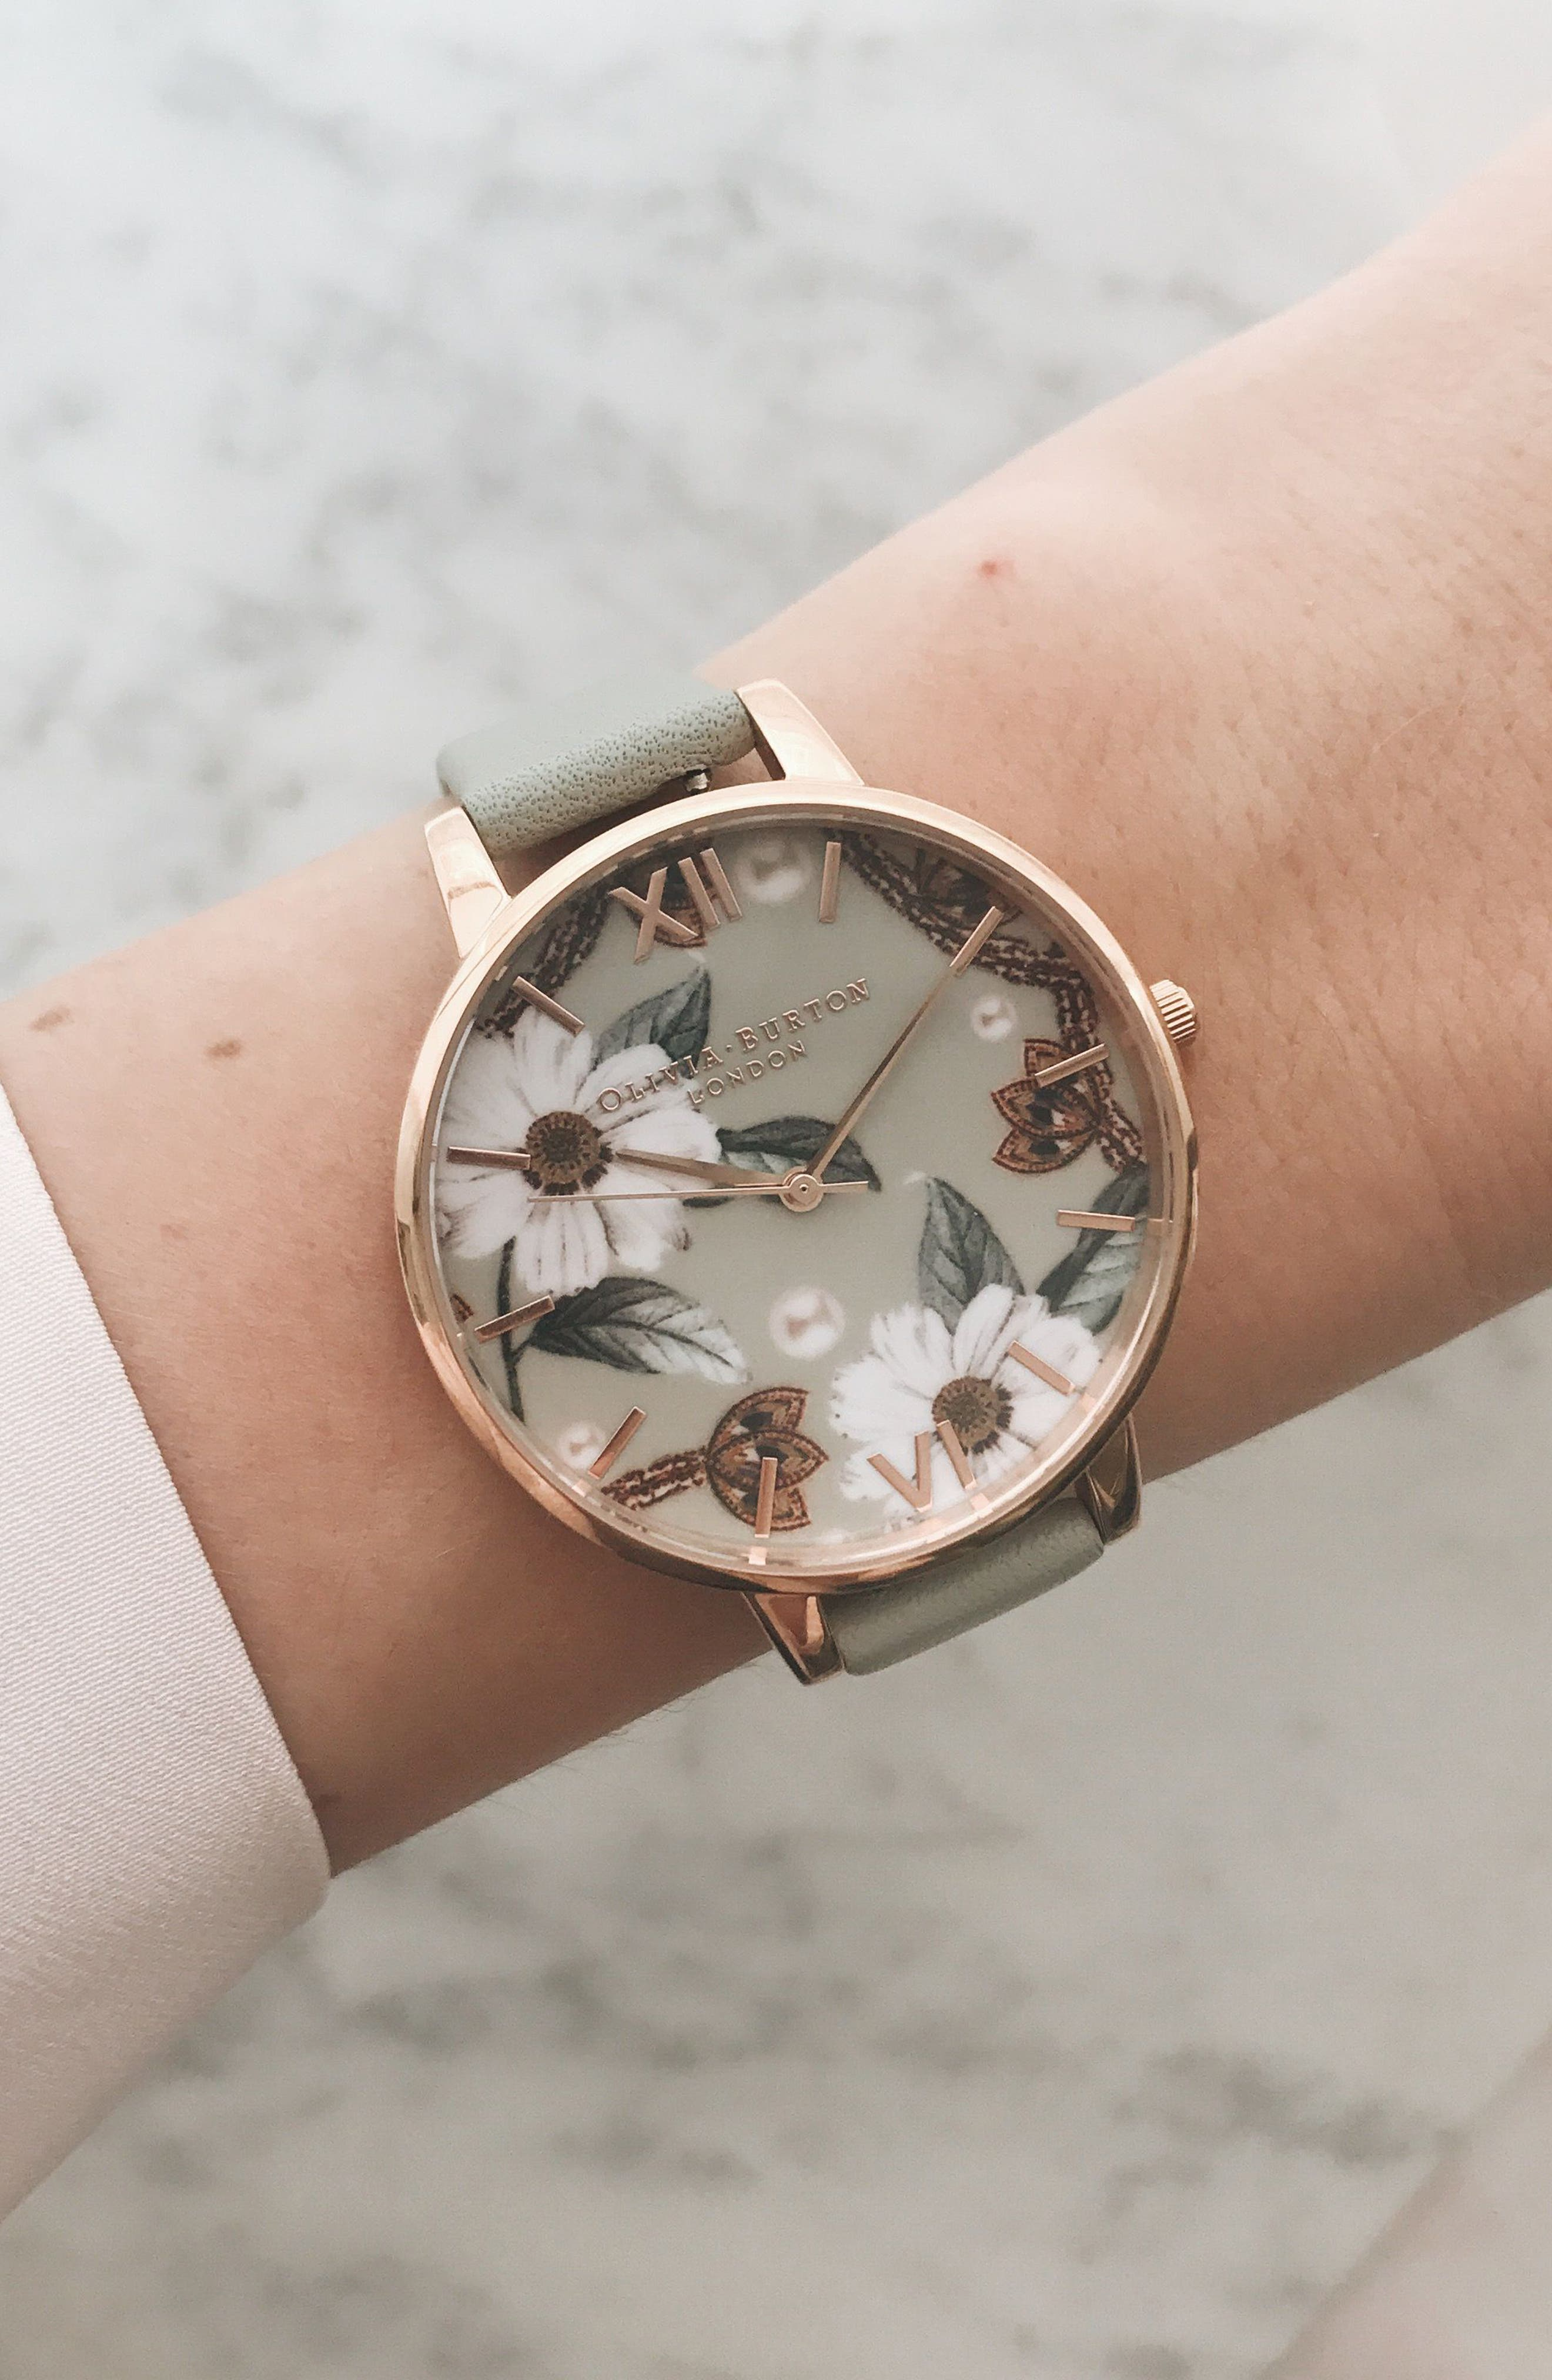 OLIVIA BURTON, Bejewelled Leather Strap Watch, 38mm, Alternate thumbnail 8, color, GREY/ FLORAL/ ROSE GOLD